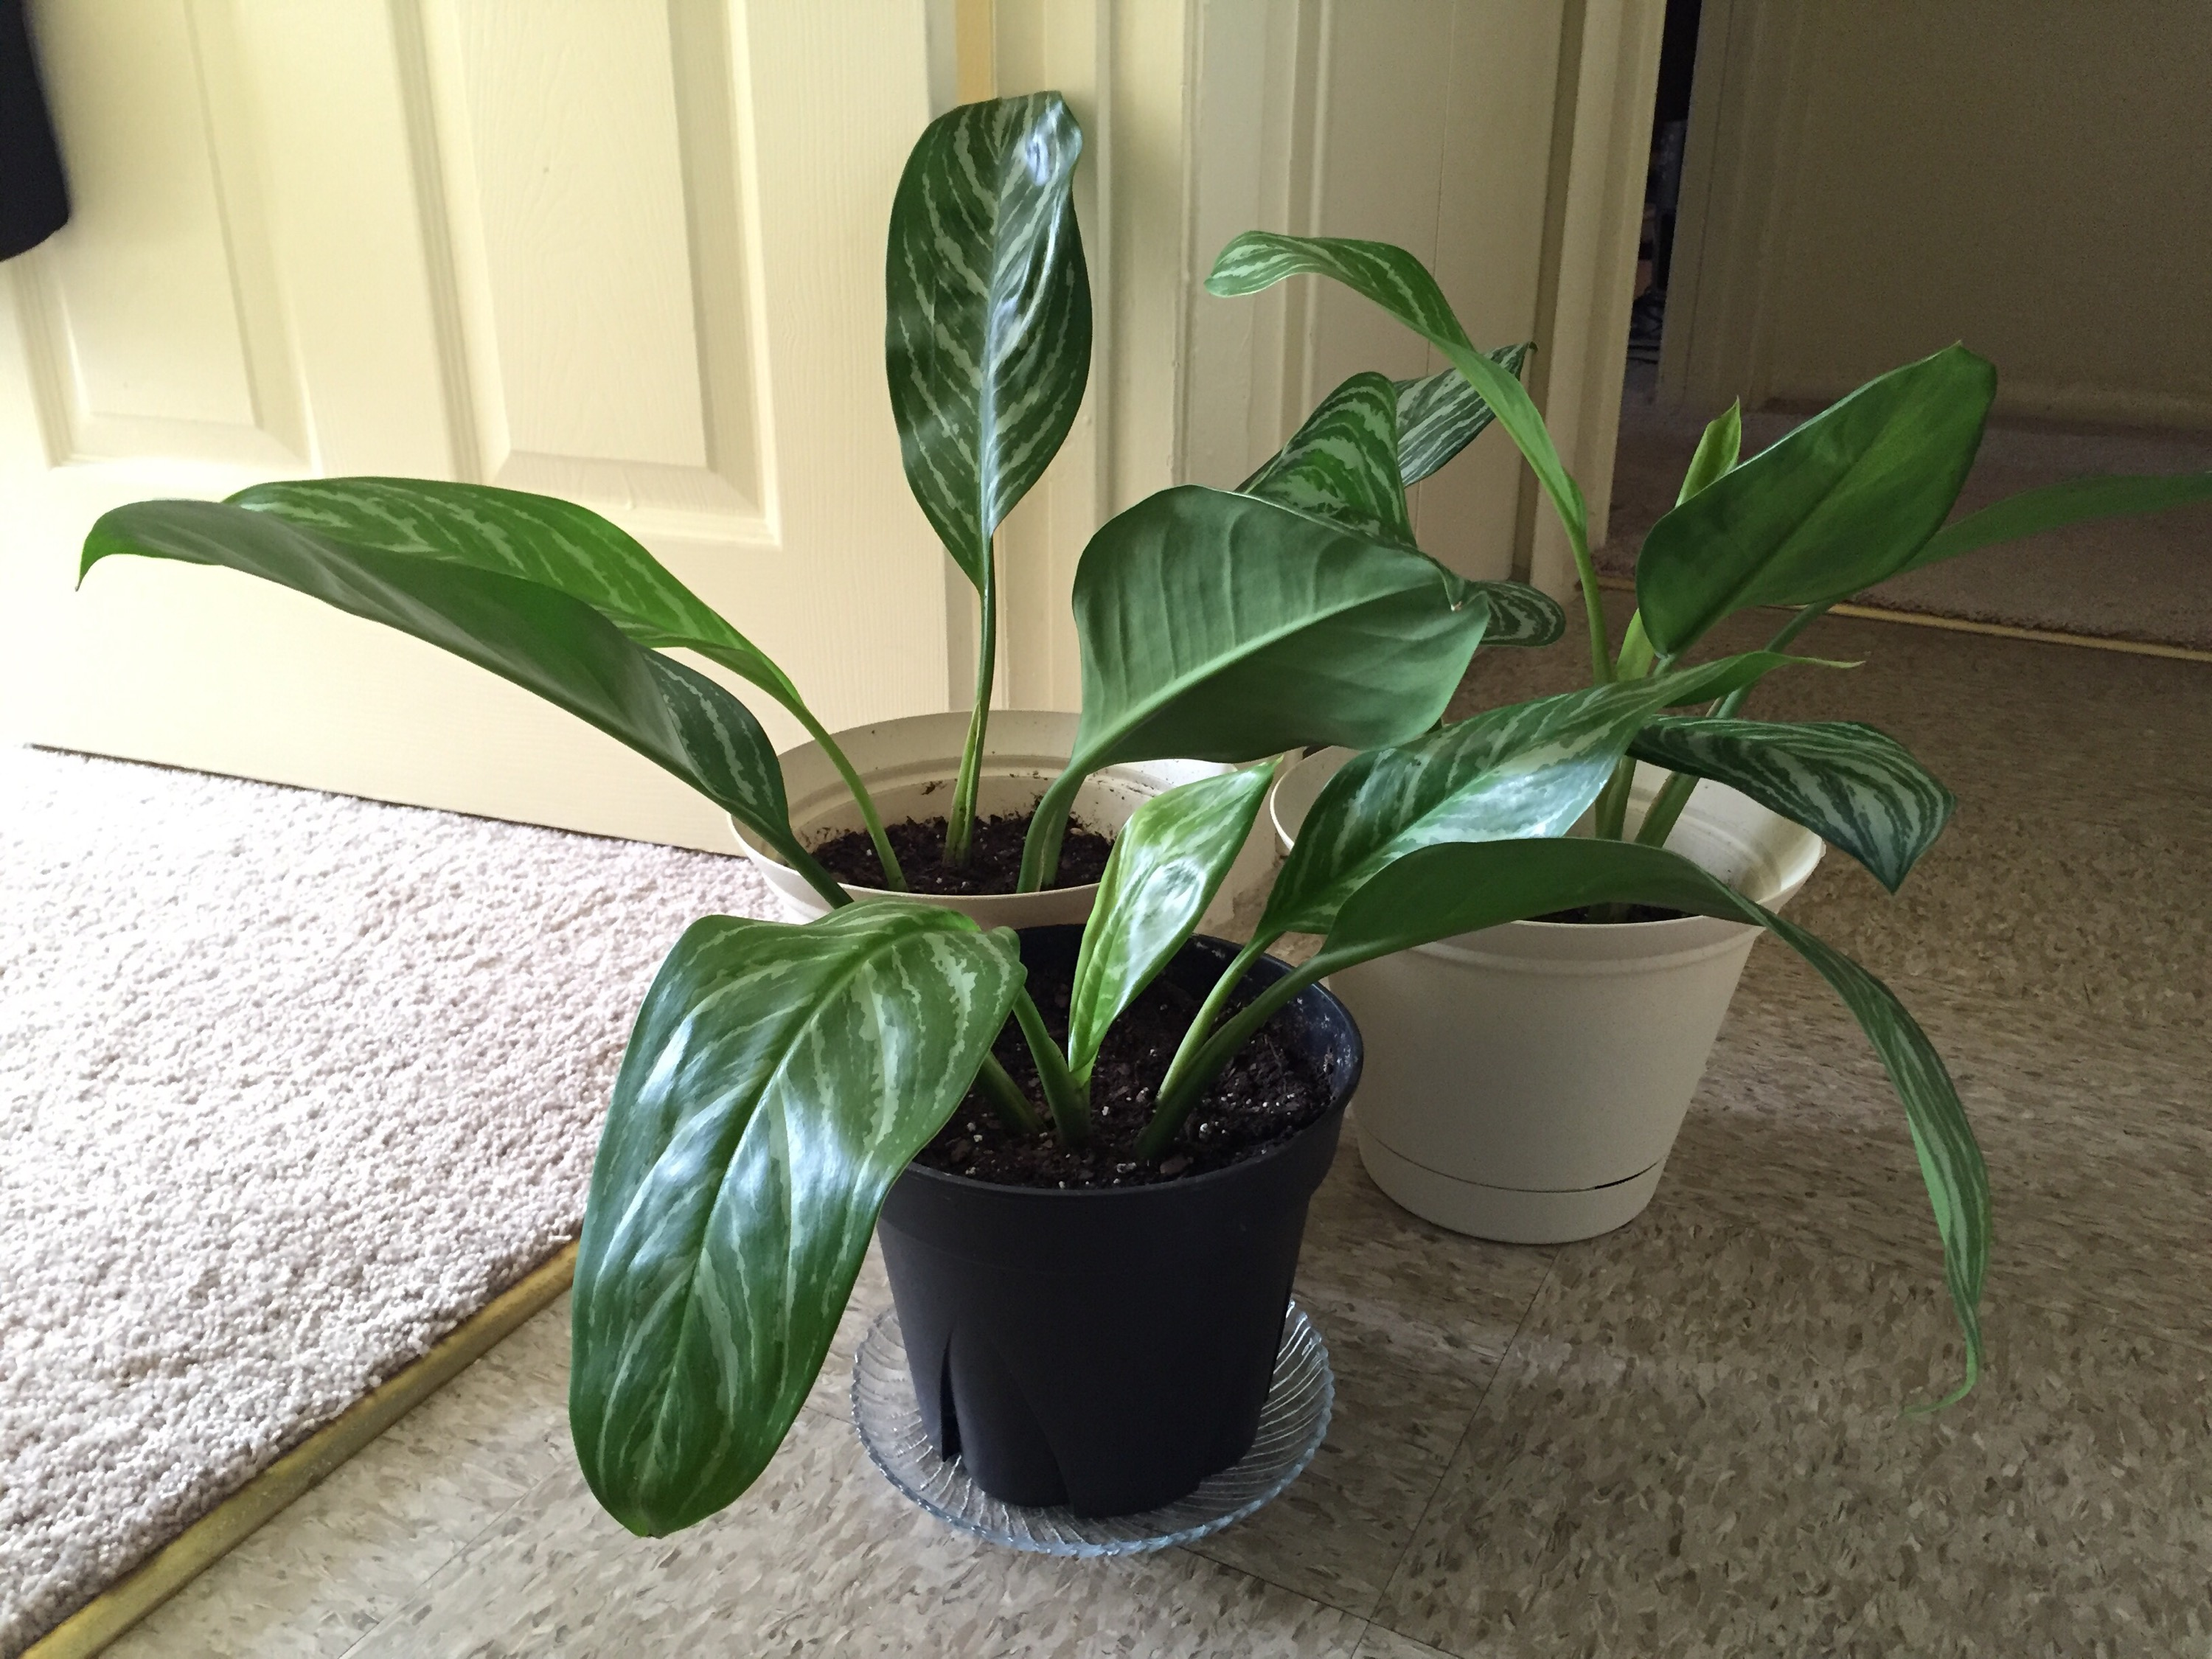 Transplanting a Chinese Evergreen